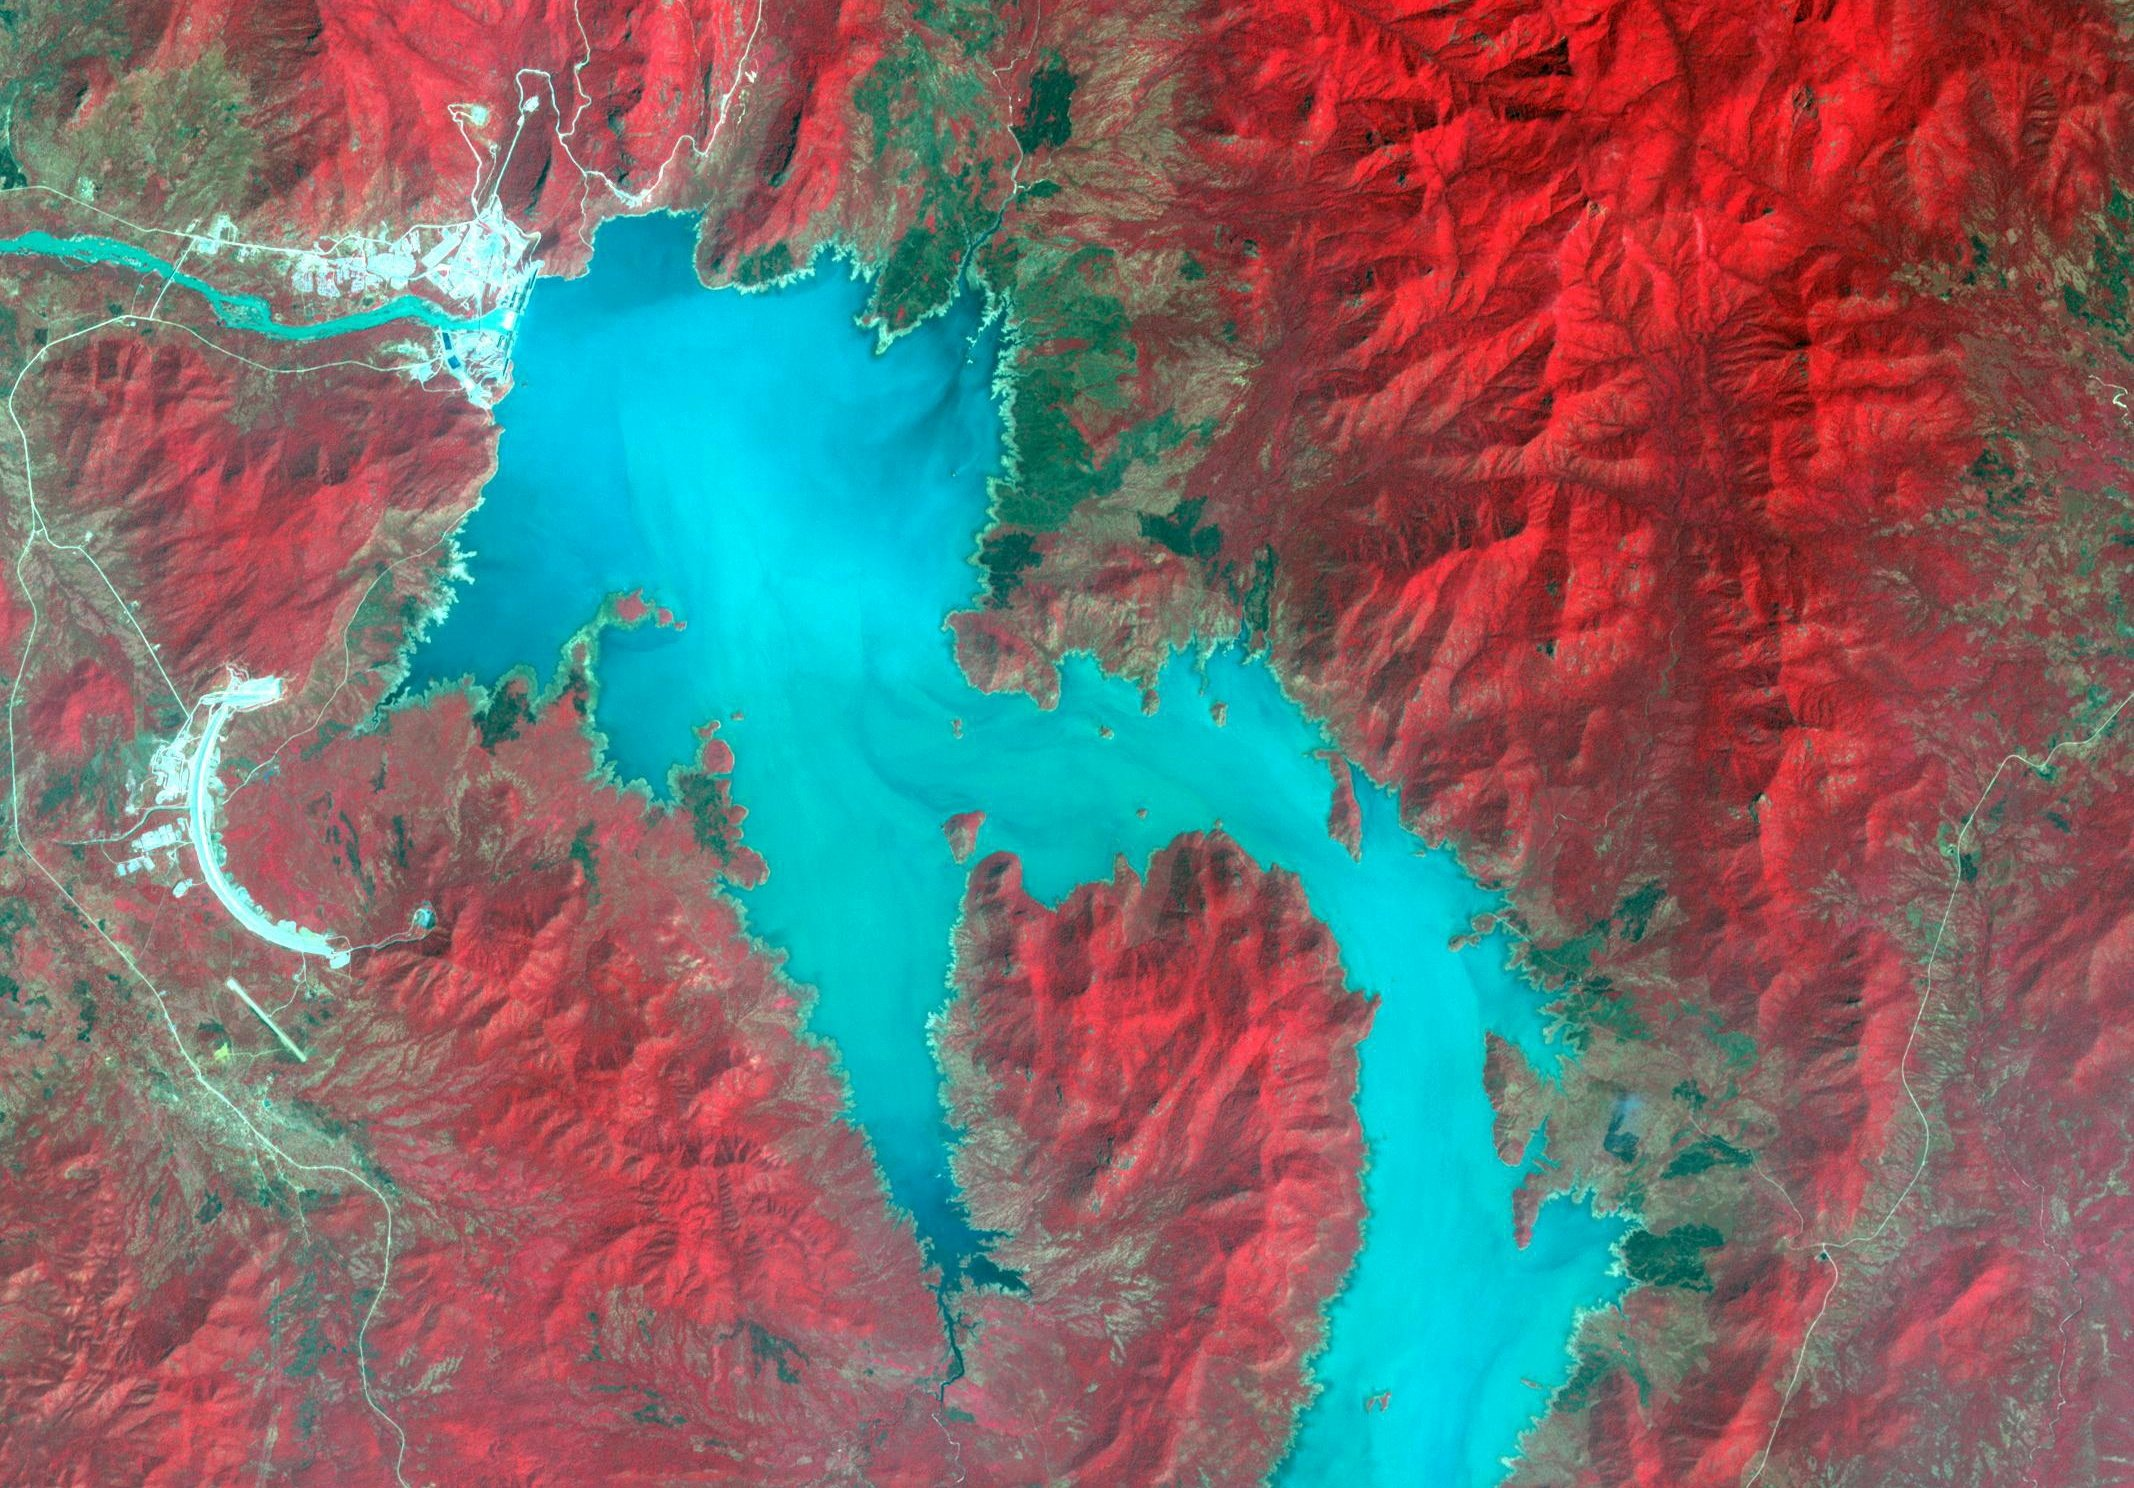 The Blue Nile River is seen as the Grand Ethiopian Renaissance Dam reservoir fills near the Ethiopia-Sudan border, in this broad spectral image taken November 6, 2020. (NASA/METI/AIST/Japan Space Systems, and U.S./Japan ASTER Science Team/Handout via Reuters)